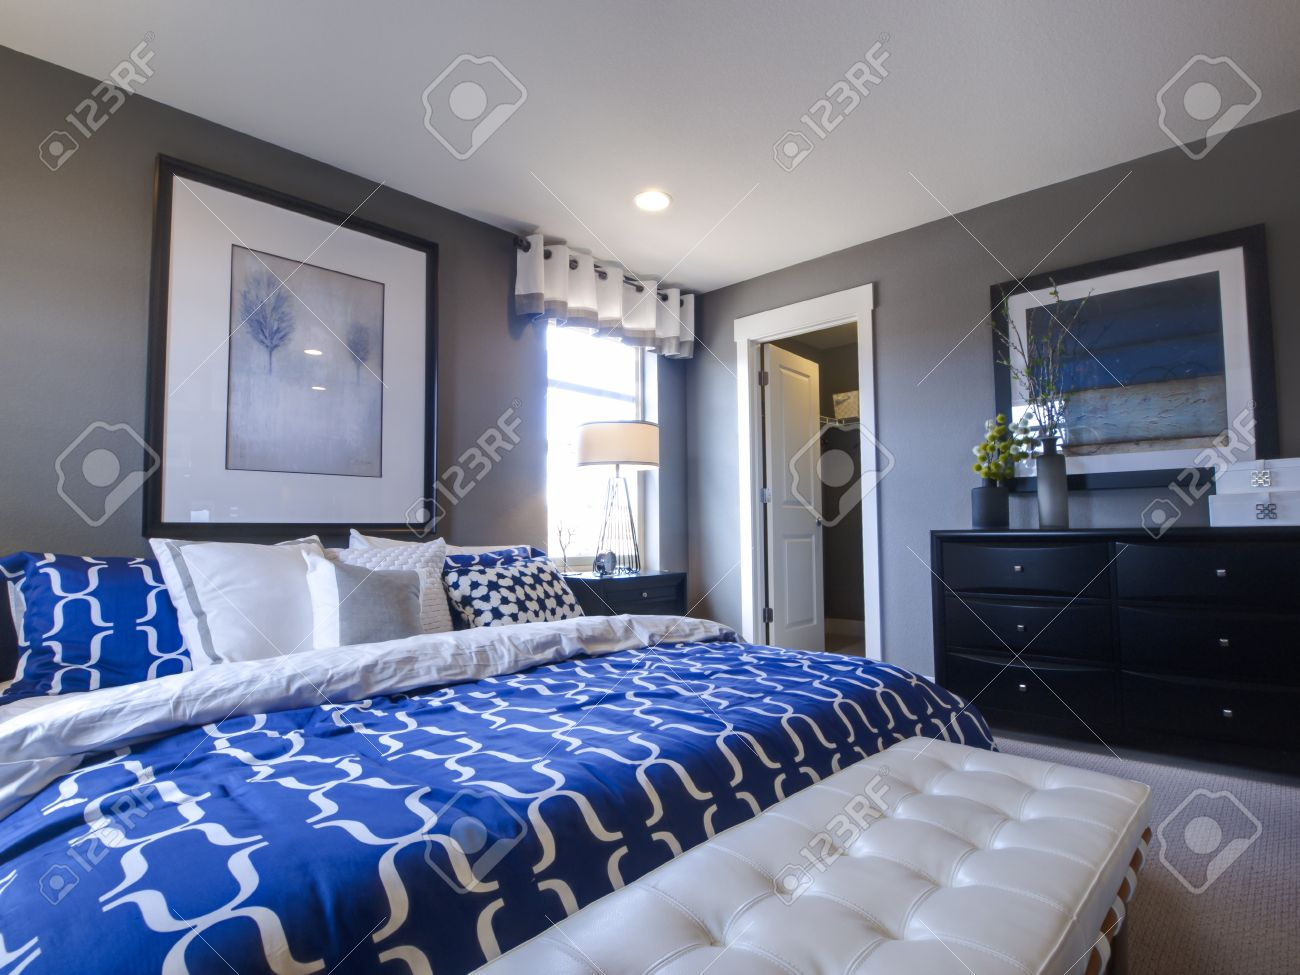 Blue modern master bedroom - Modern Master Bedroom With Blue Wall And White Linens Stock Photo 15079265